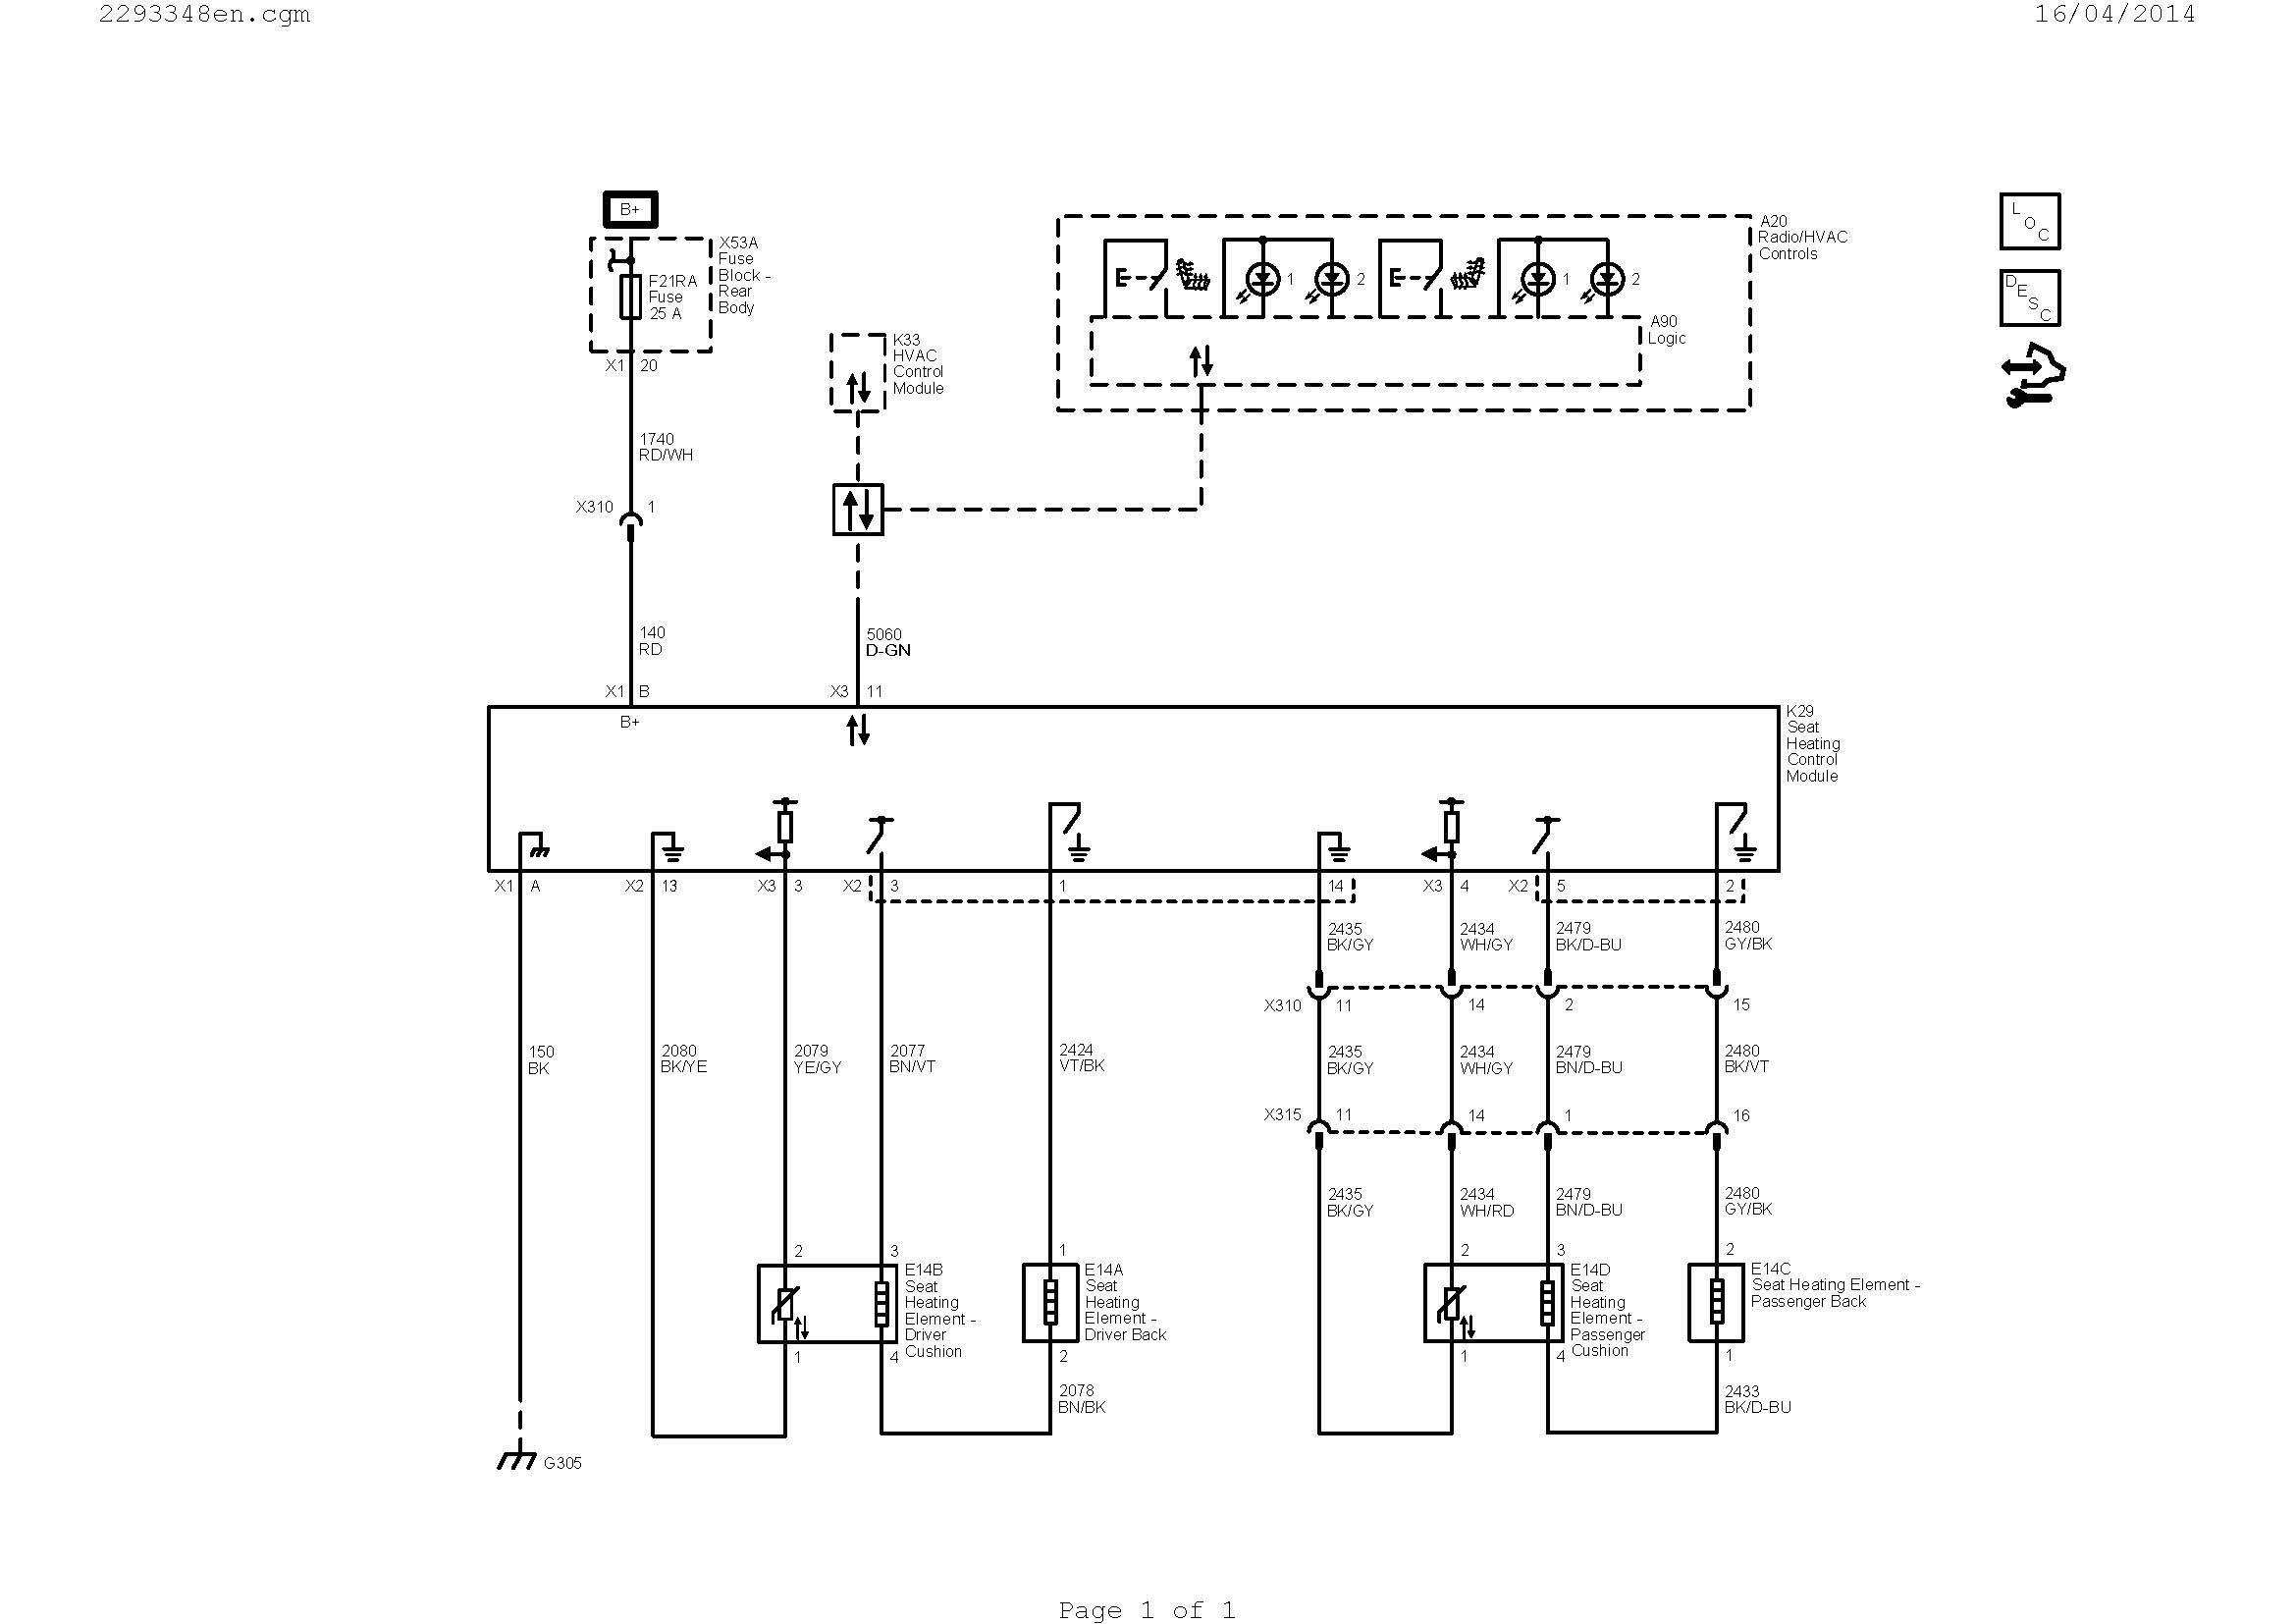 painless wiring switch panel diagram Collection-Wiring Diagram for Kohler Engine Valid Mechanical Engineering Painless Wiring Diagram Download 15-q